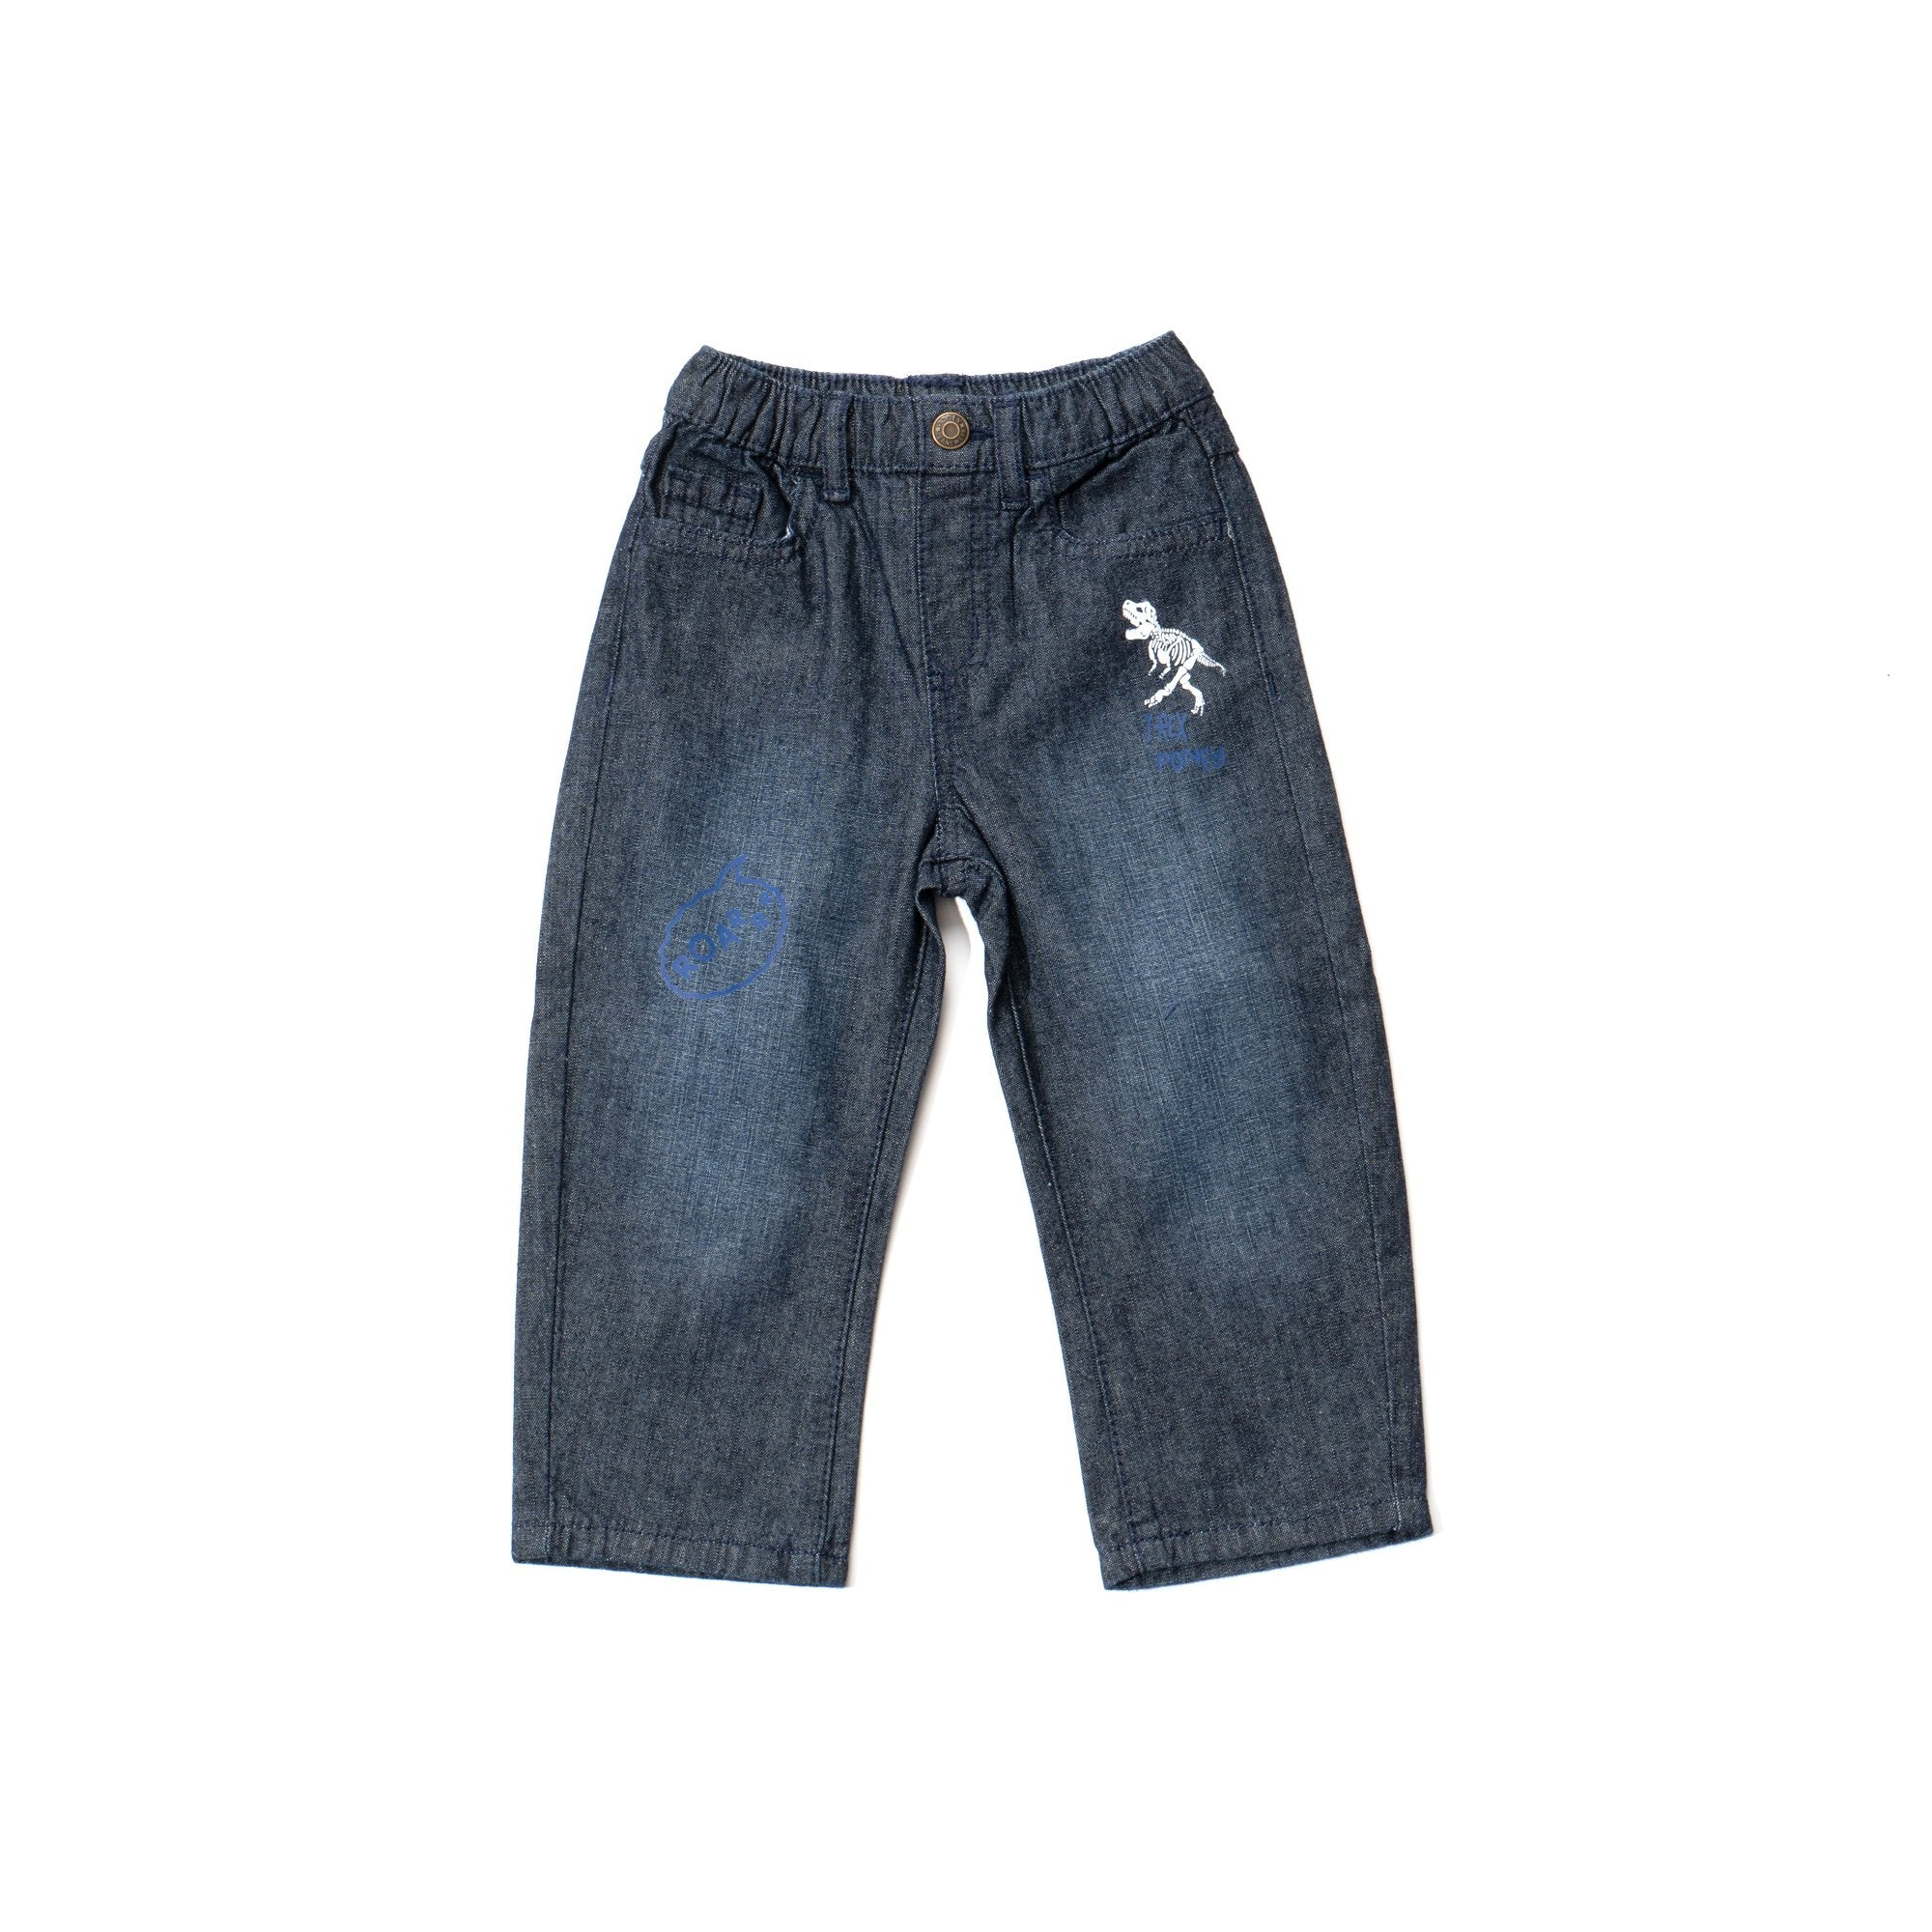 Poney Boys Jeans 7834 (6mths-12yrs)